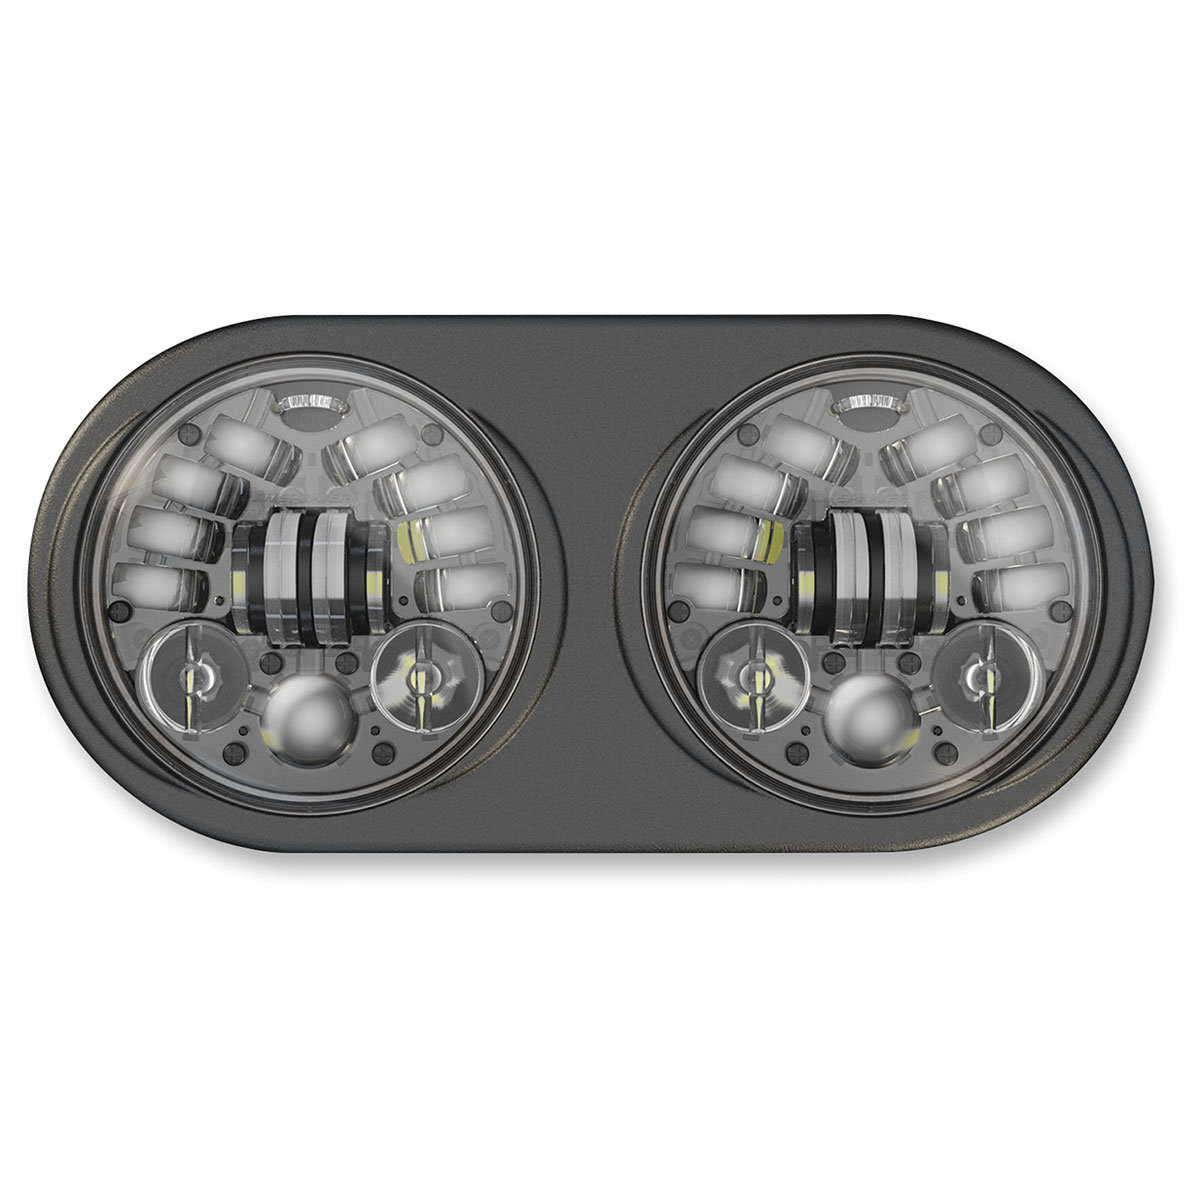 J.W. Speaker Dual LED Adaptive Headlight Black